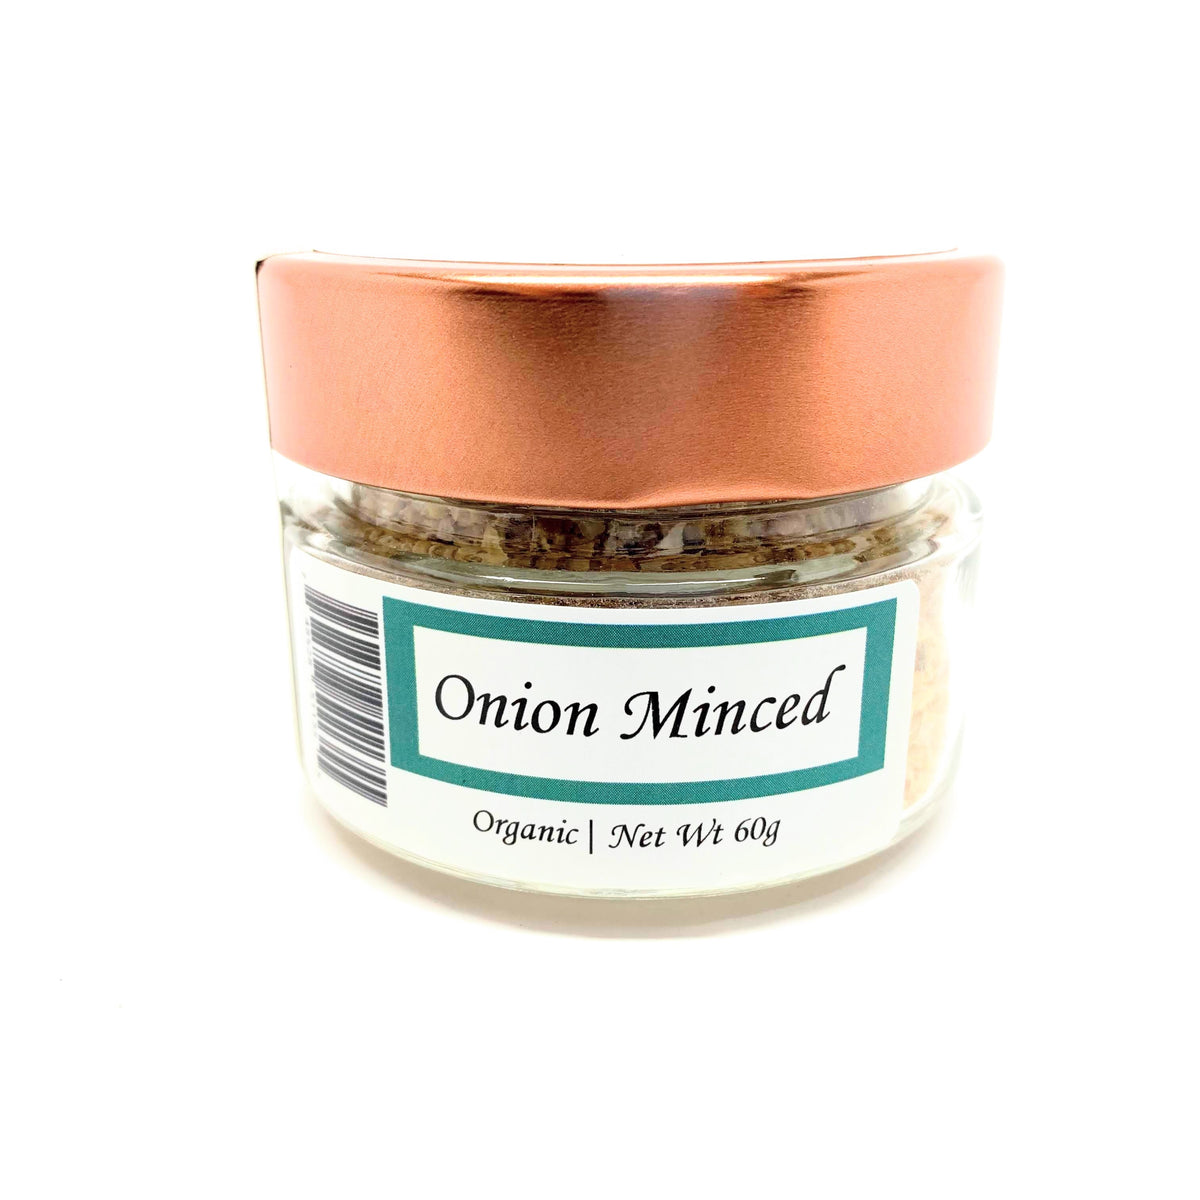 Chalice Spice Organic Minced Onion